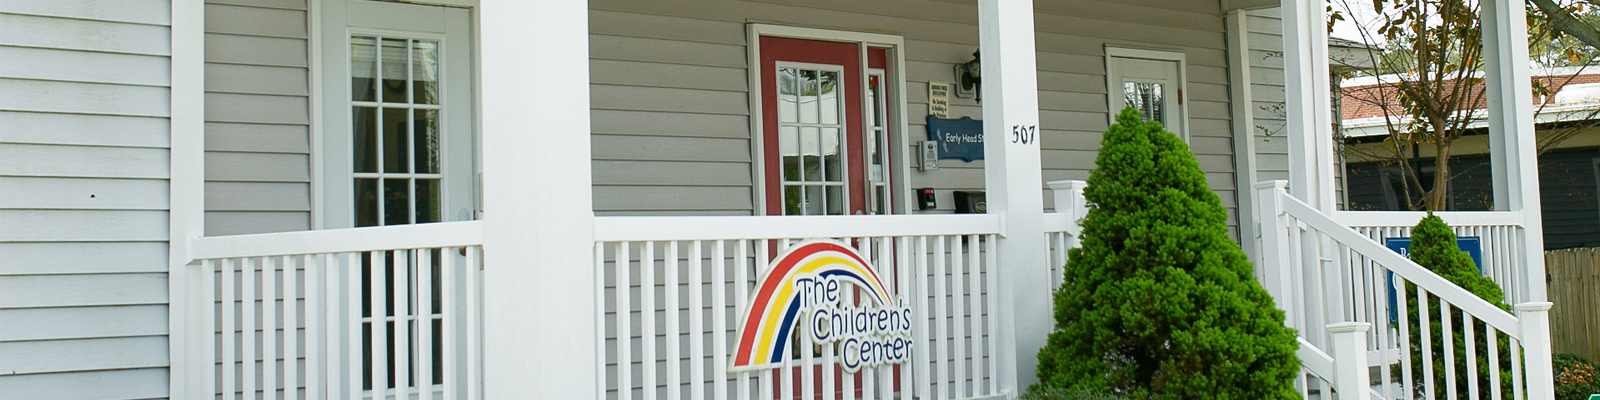 Barbara S. Mease Children's Center at the Jones House